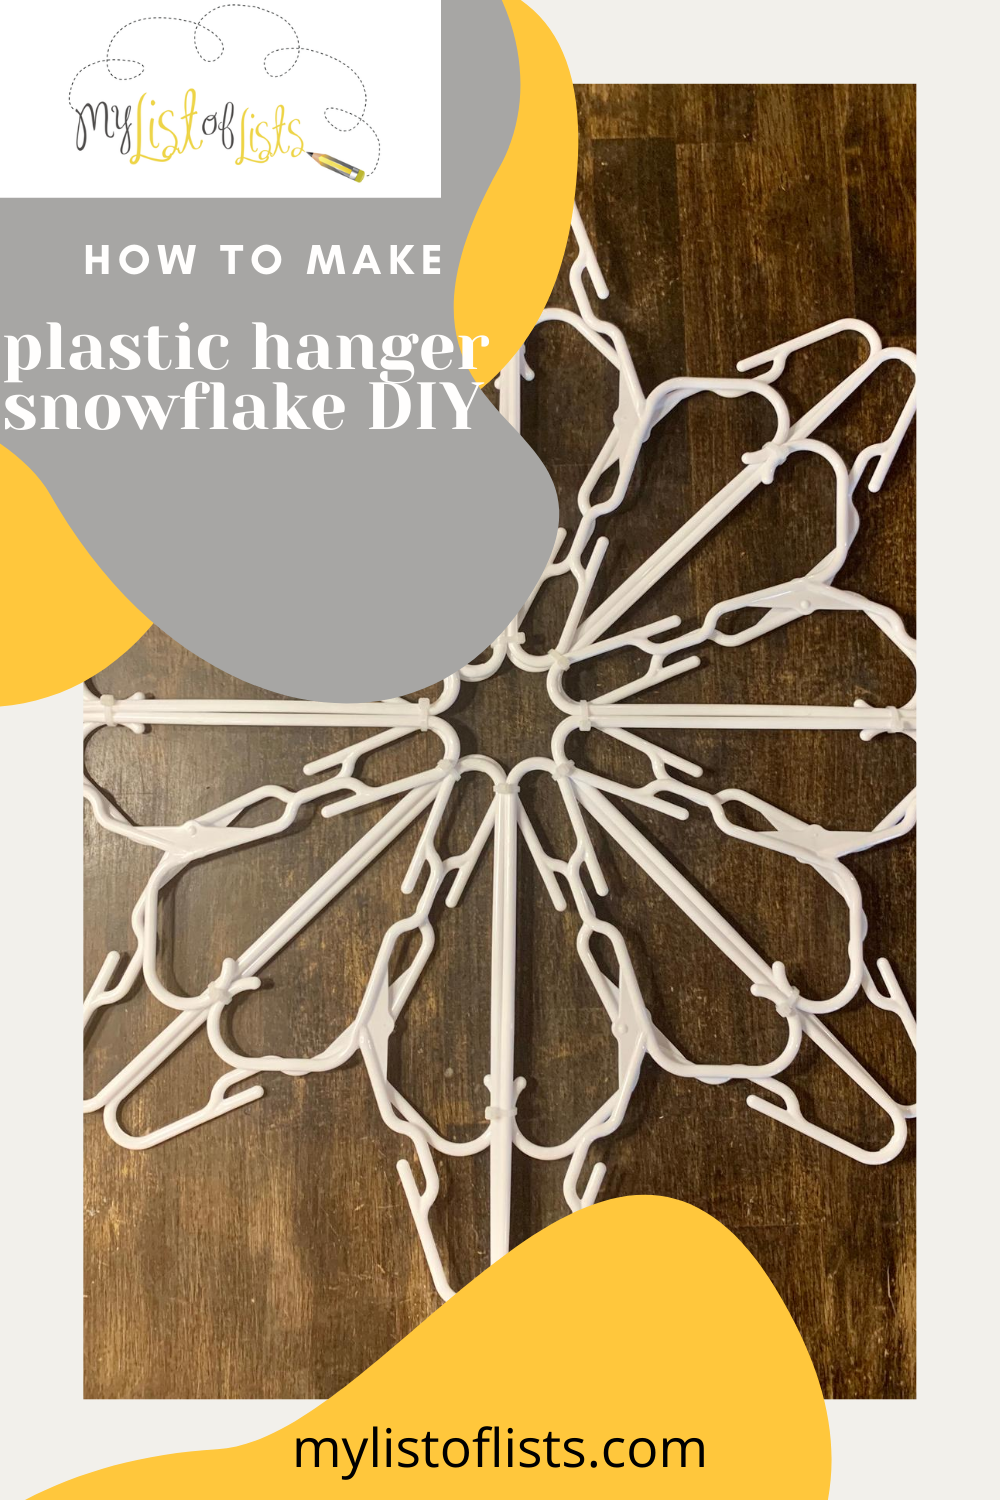 Looking for a fun project to indulge in this holiday season? Why not make your own snowflakes out of plastic hangers and zip ties from the Dollar Store? You might be amazed at how easy this DIY project is. #mylistoflistsblog #holidaycrafts #DIY #christmascrafts #christmasdecorDIY